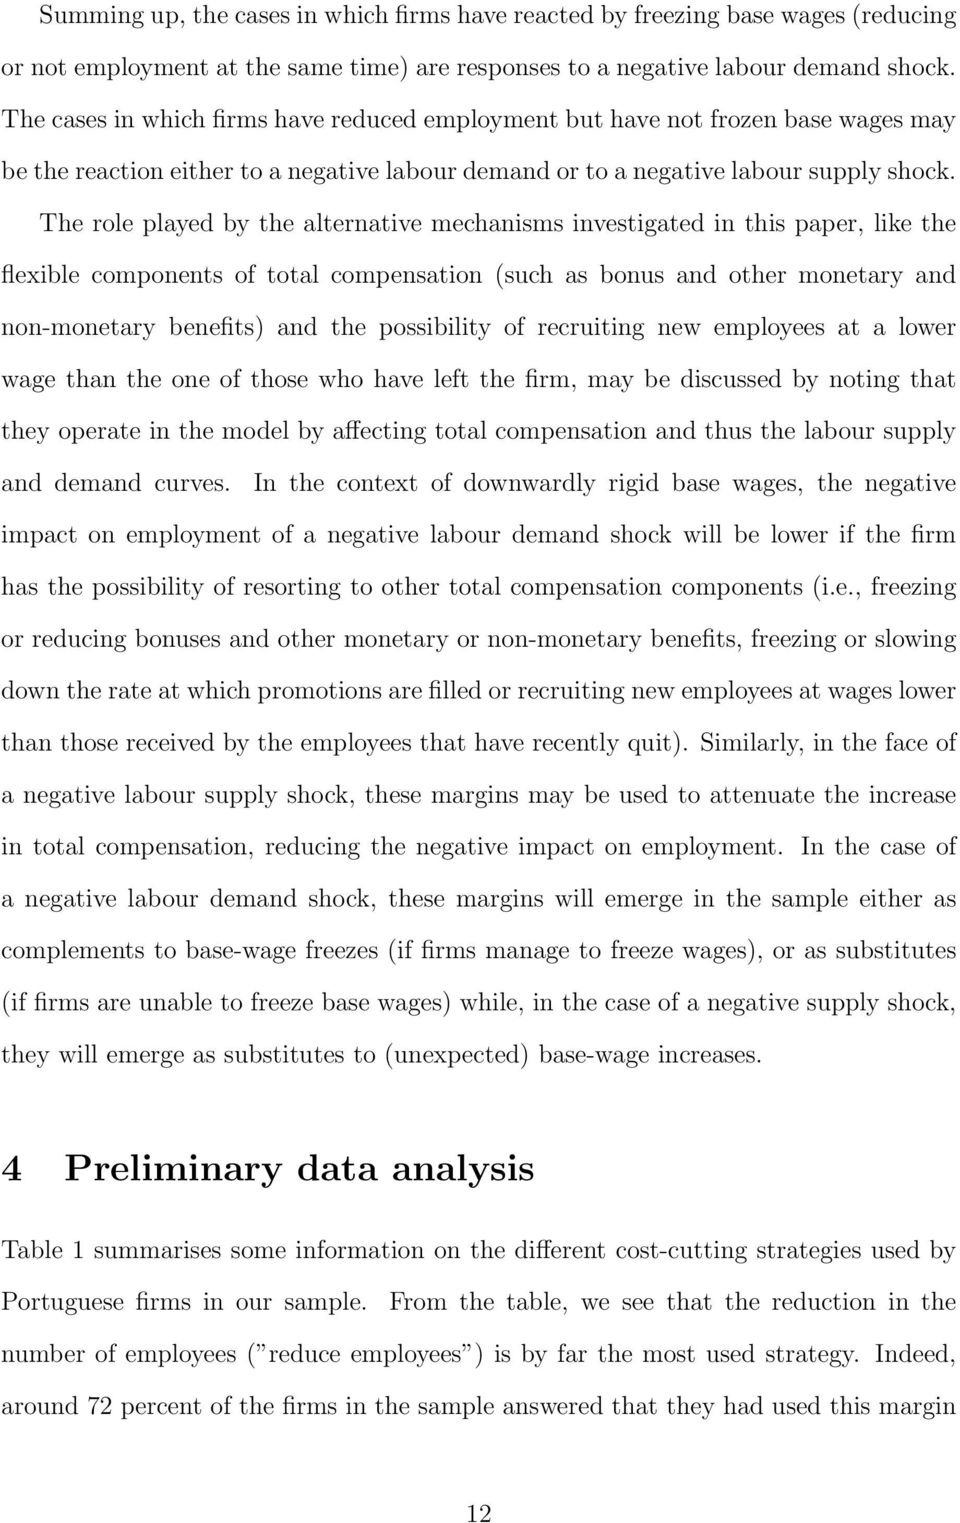 The role played by the alternative mechanisms investigated in this paper, like the flexible components of total compensation (such as bonus and other monetary and non-monetary benefits) and the